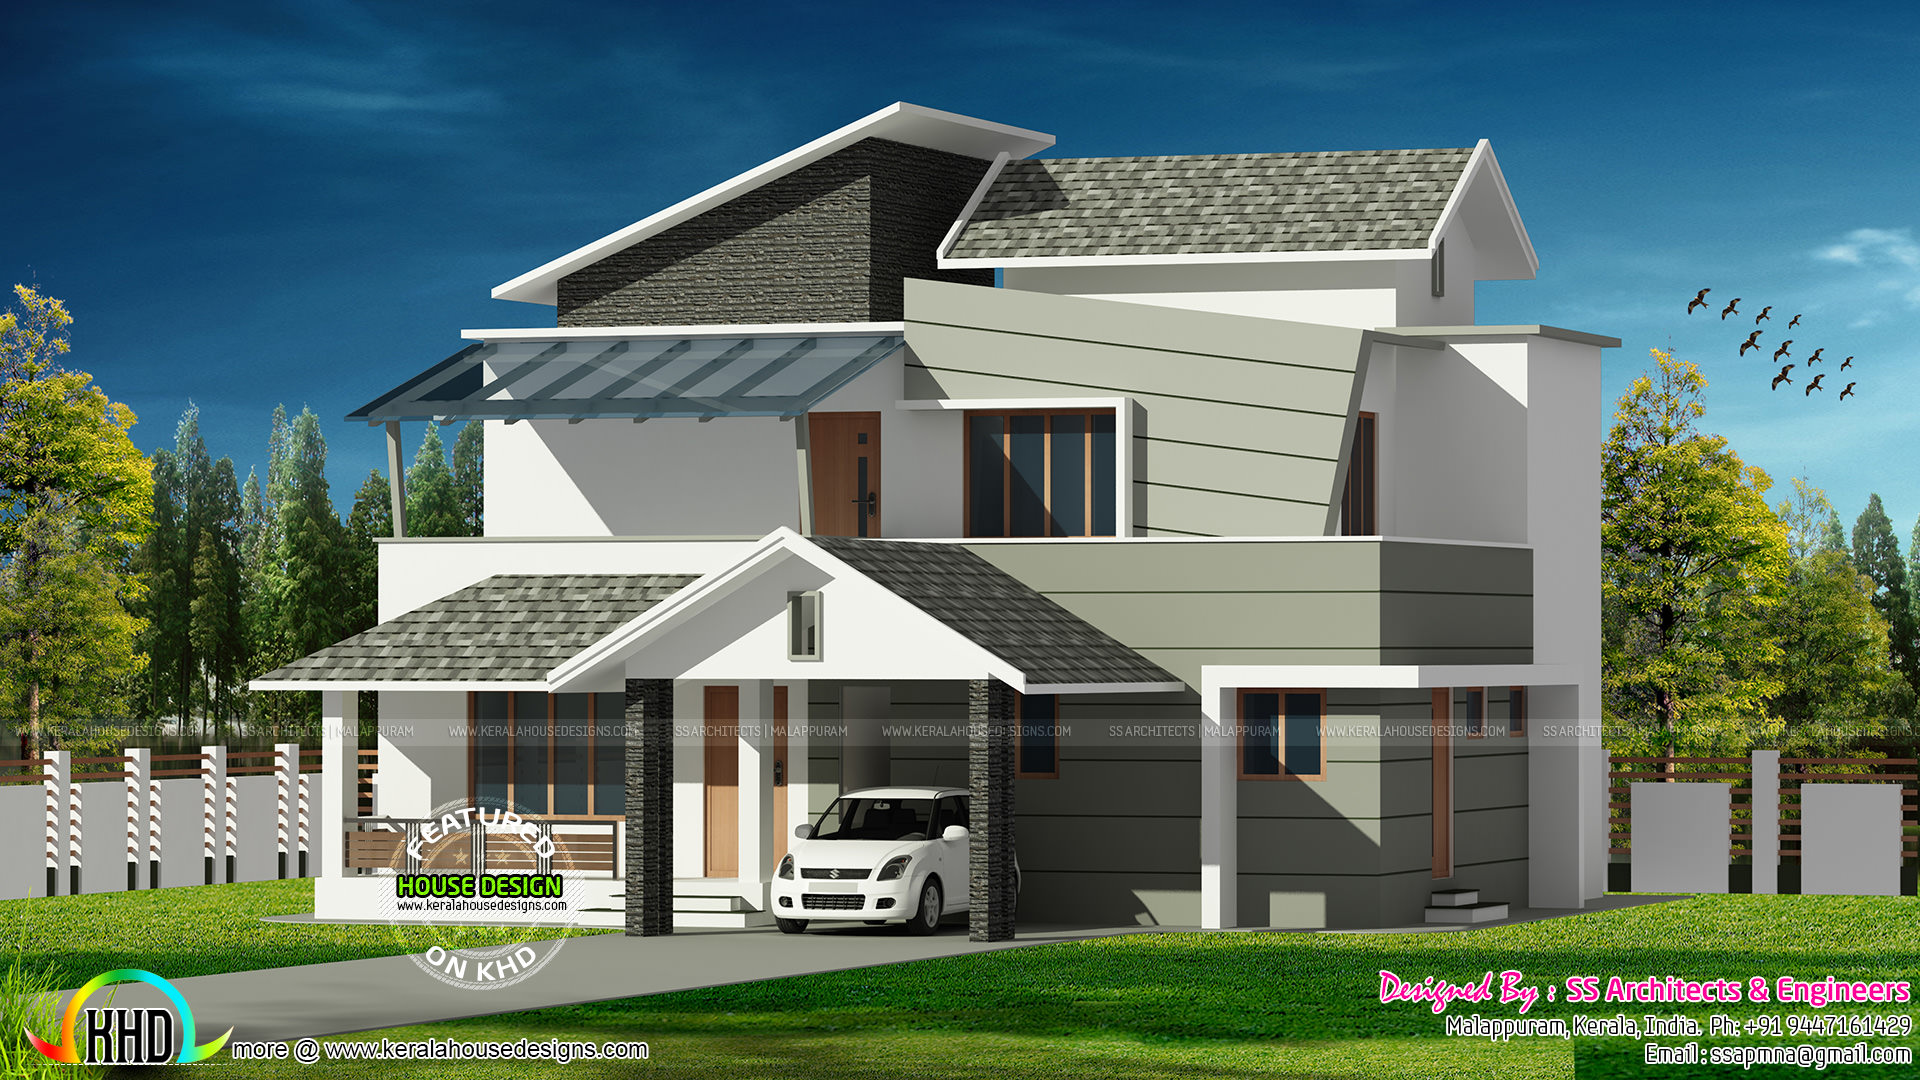 GANDUL: 2042 sq-ft contemporary style house architecture